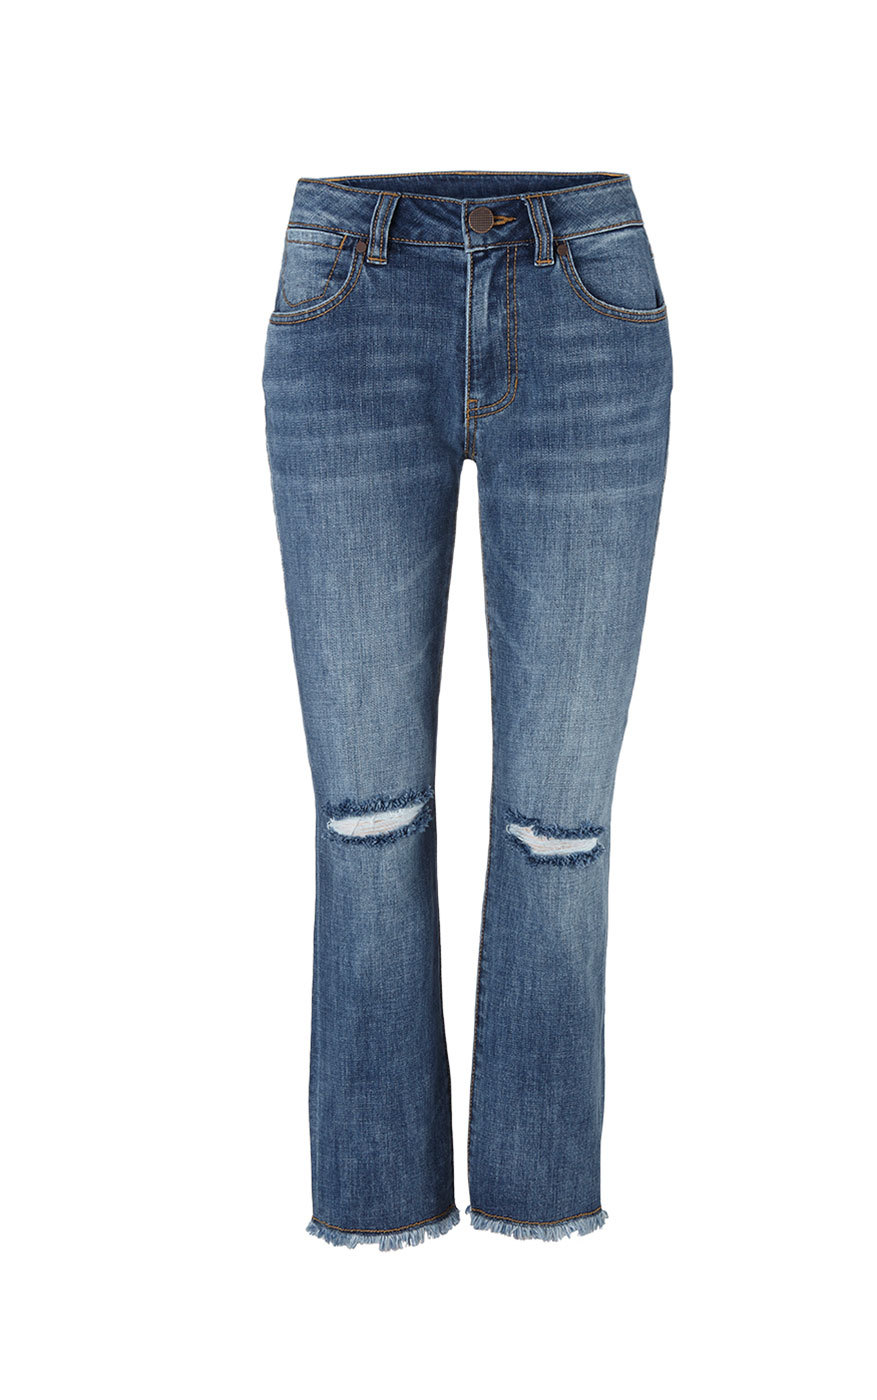 cabi's Cropped High Straight